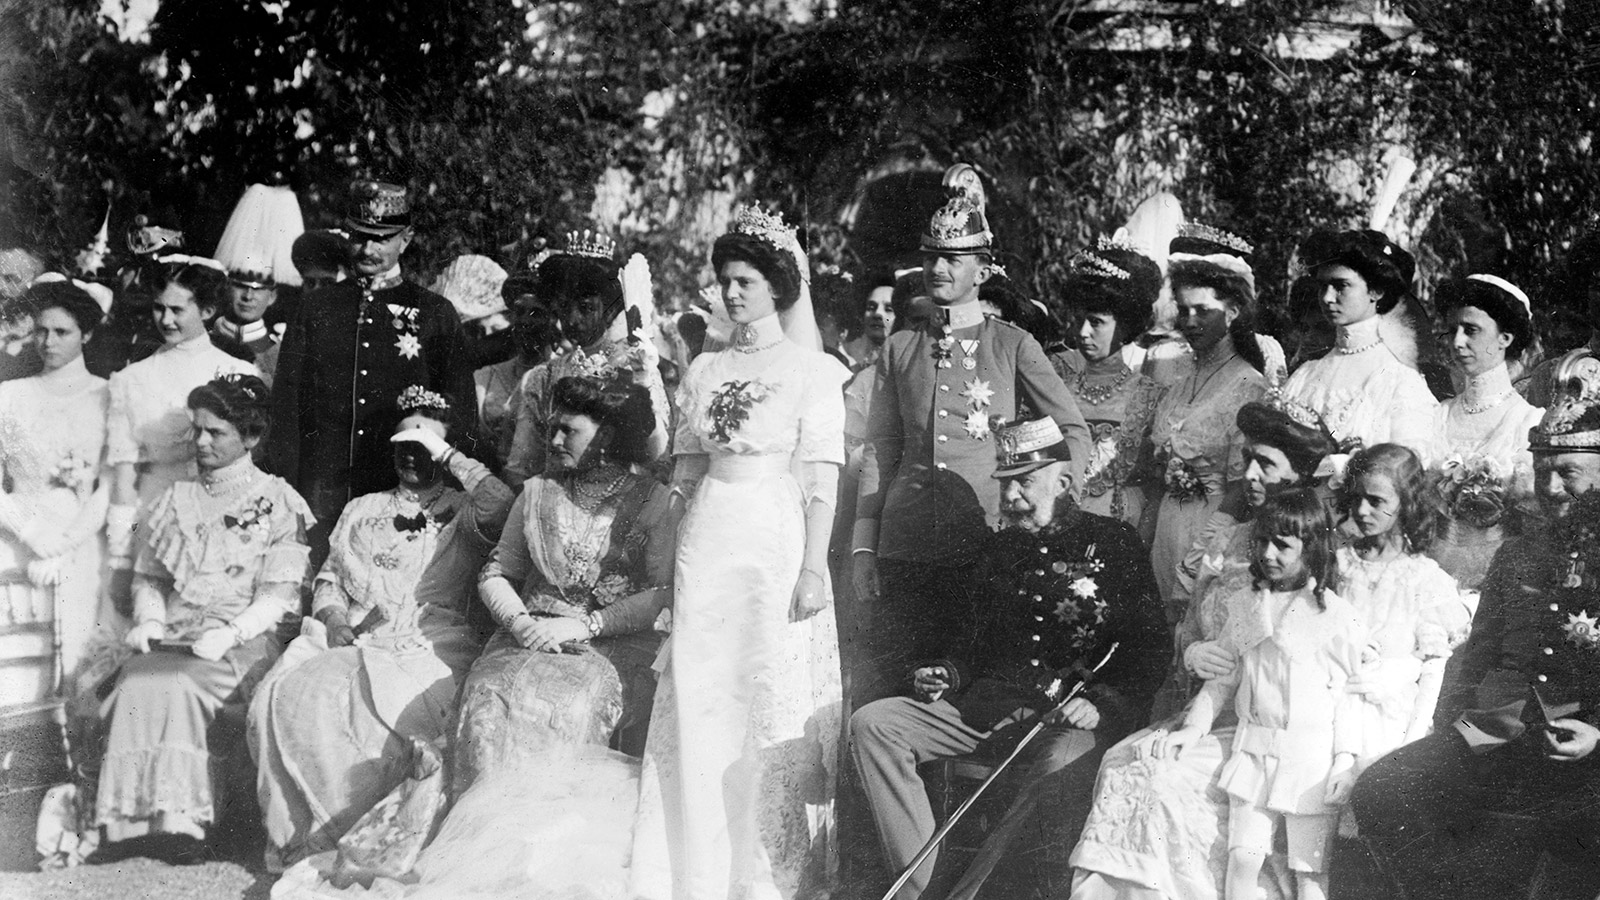 Franz Joseph I (1830-1916), Emperor of Austria, seated centre, at the marriage of Archduke Charles (later Charles I) to Princess Zita of Bourbon-Parma at Schwarzau Castle, 21 November 1911.